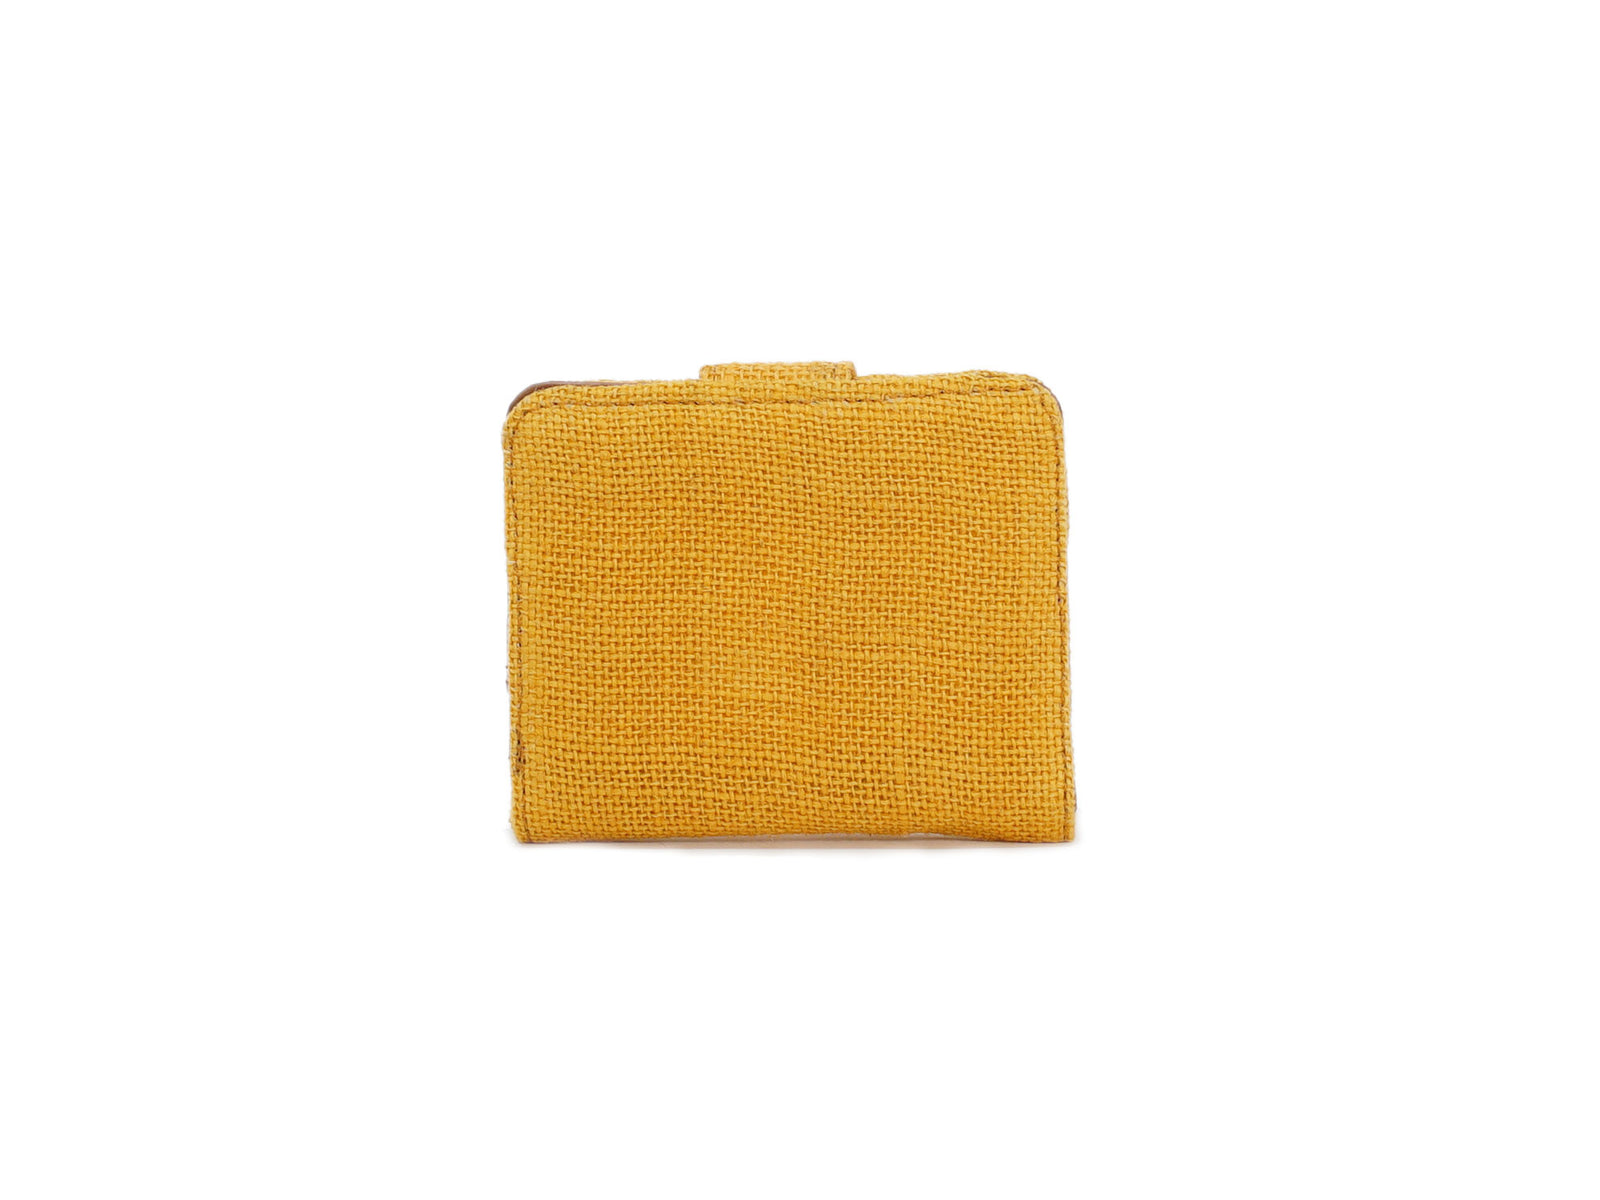 Bessa Wallet - Small